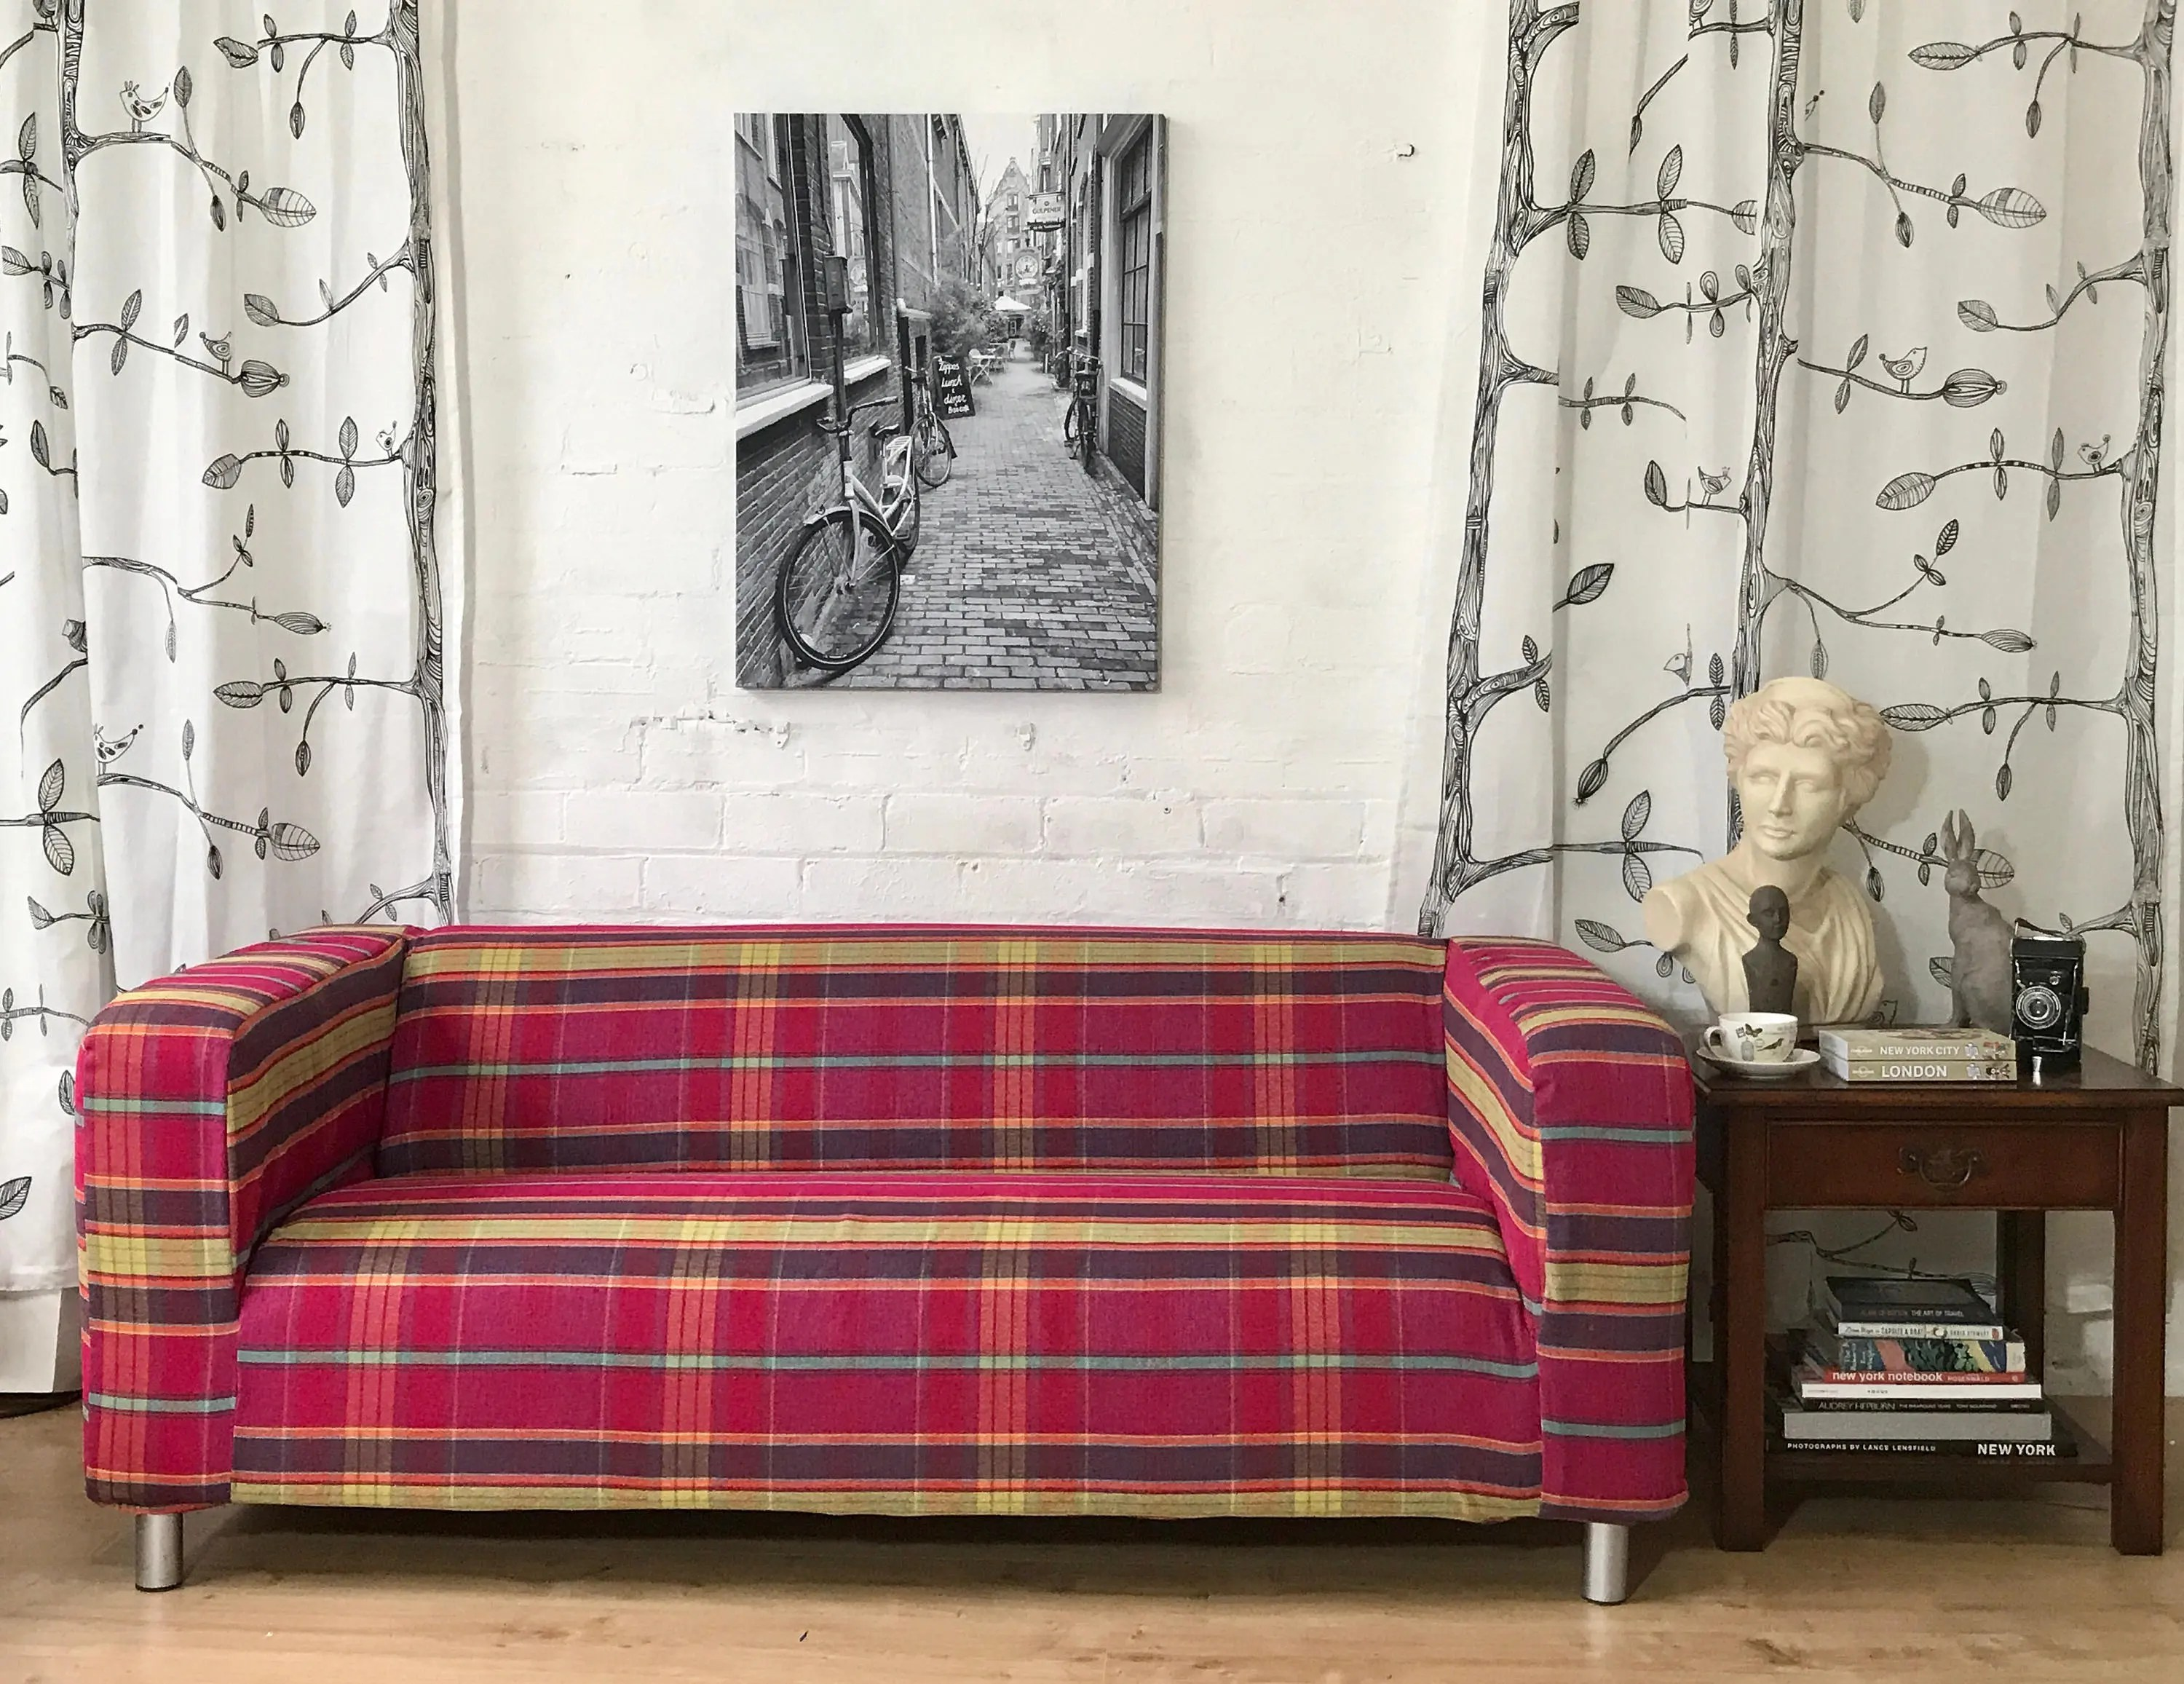 Ikea Sofa 180 Cm Slip Cover To Fit The Ikea Klippan 2 Seat Sofa 180cm Stunning Linen Textured Tartan Pattern Cerise And Lime